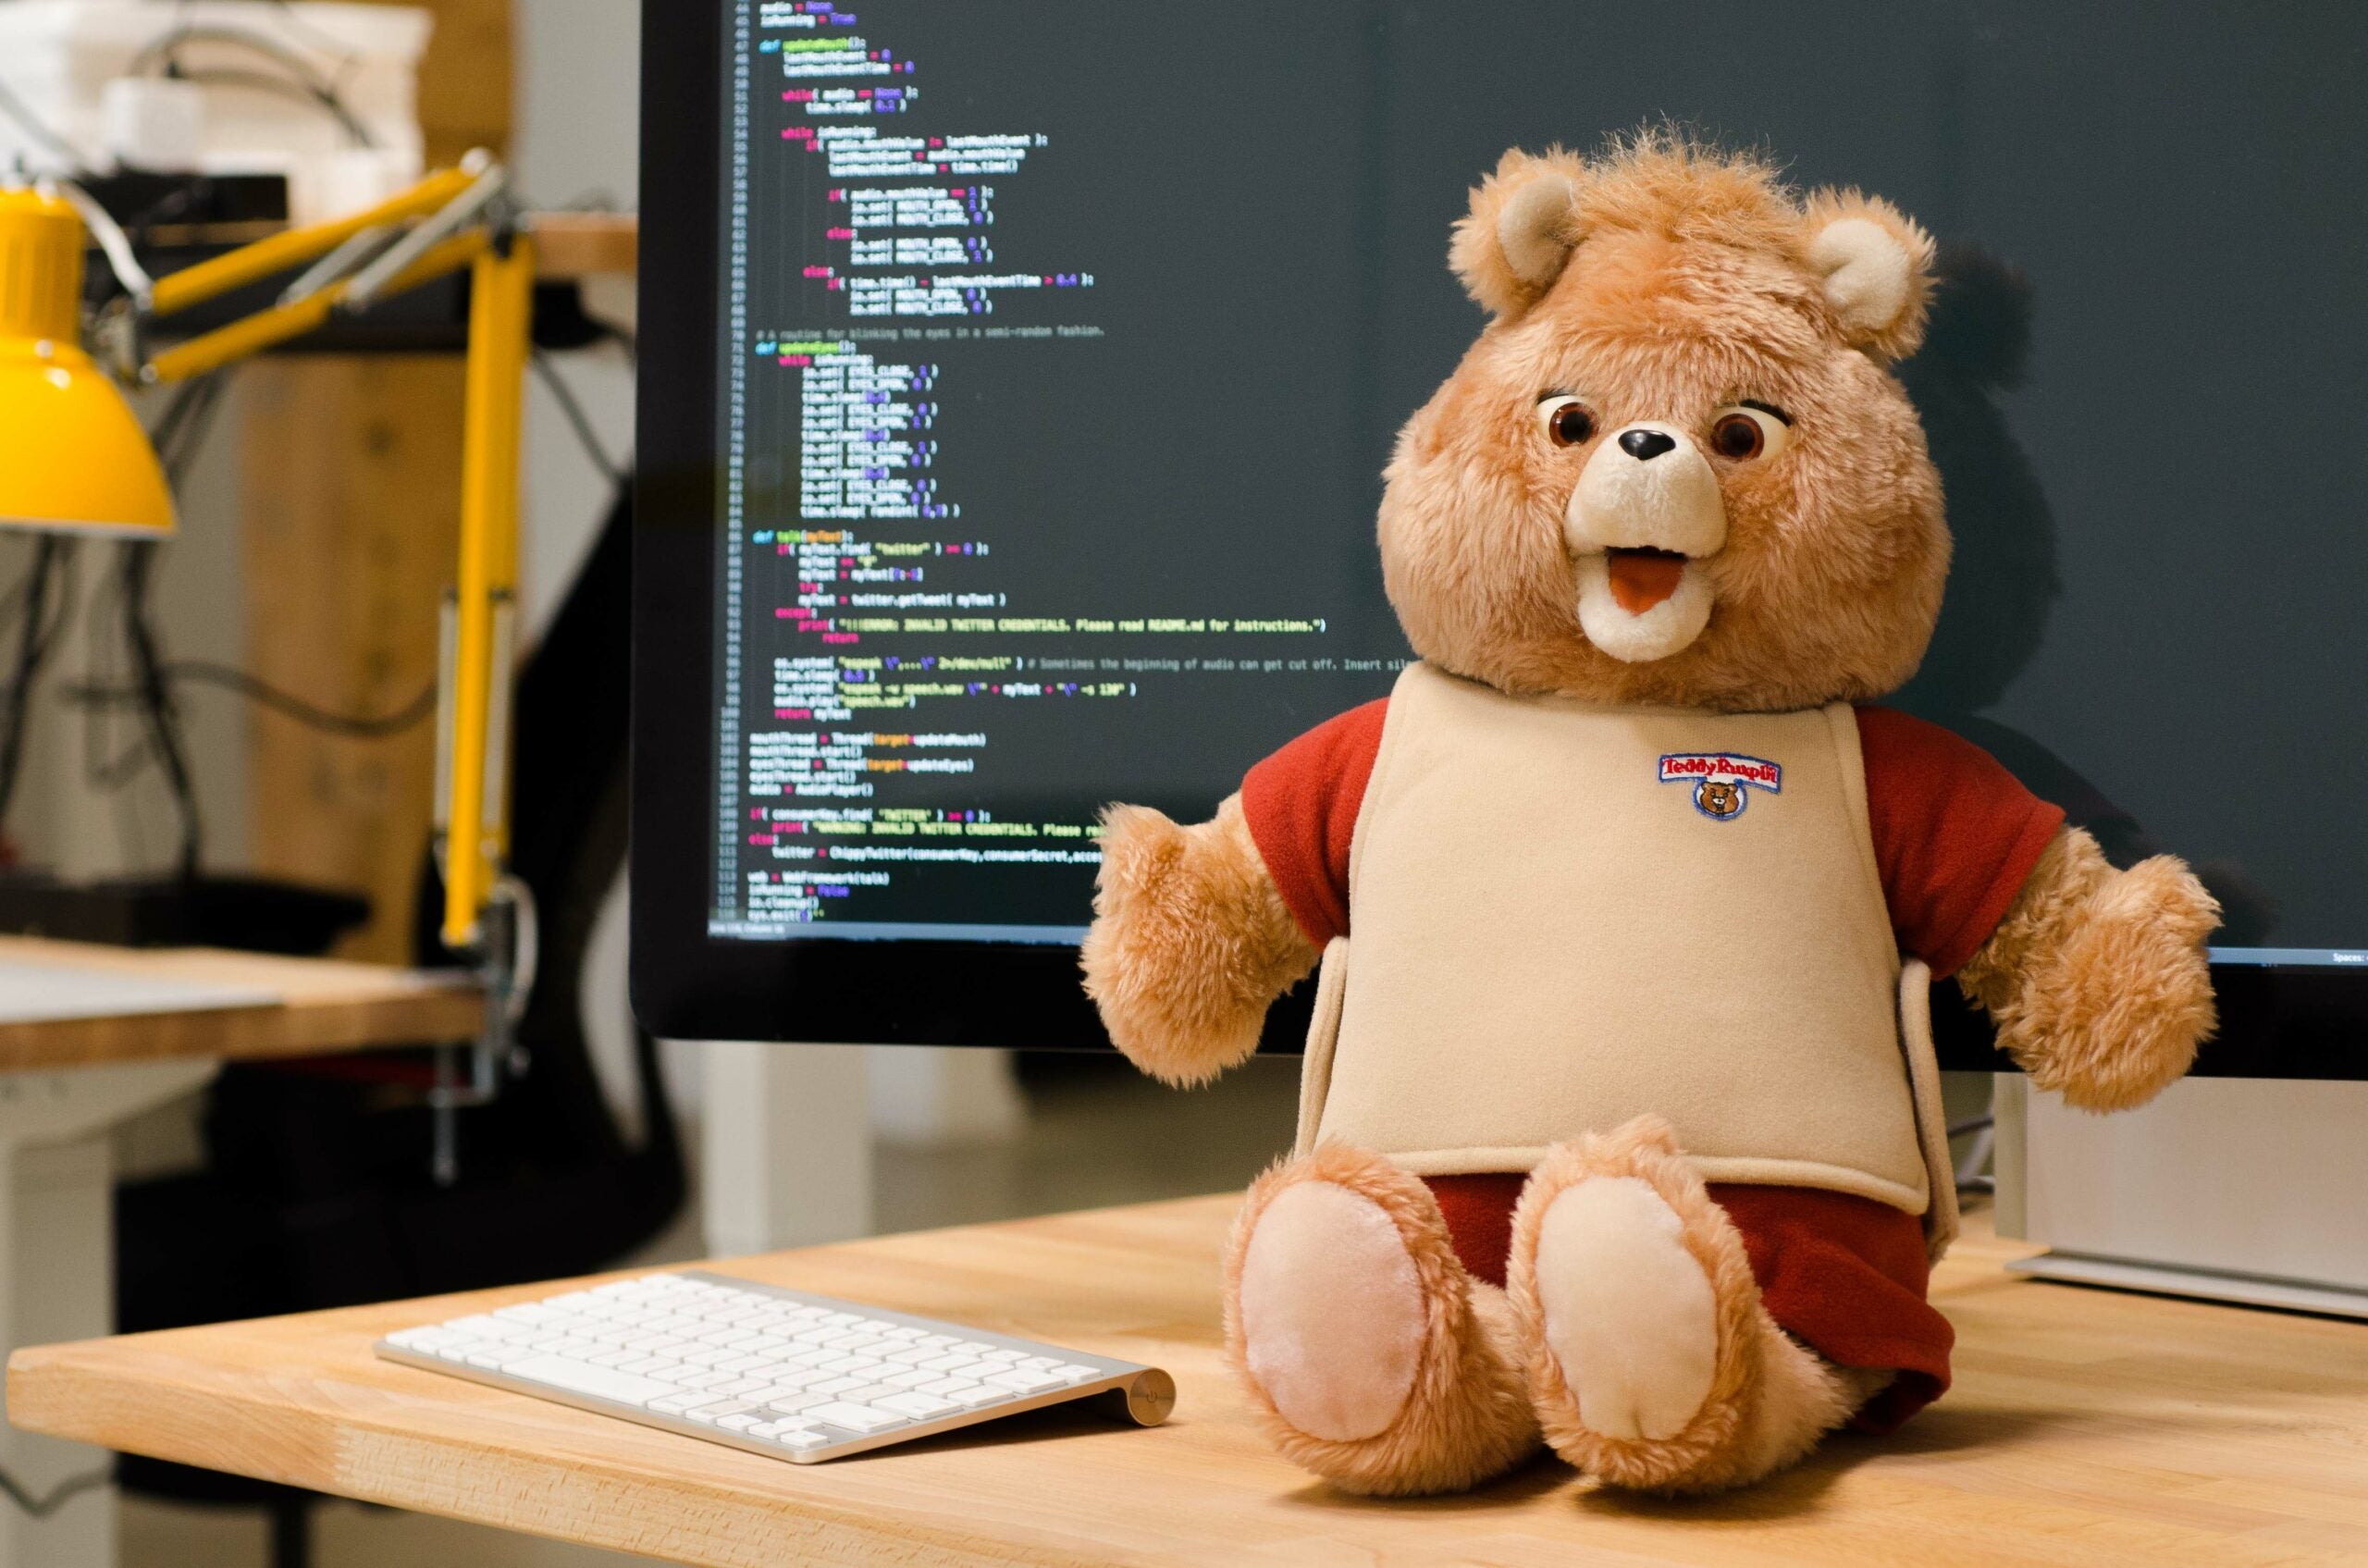 Hack A Teddy Bear To Say Anything